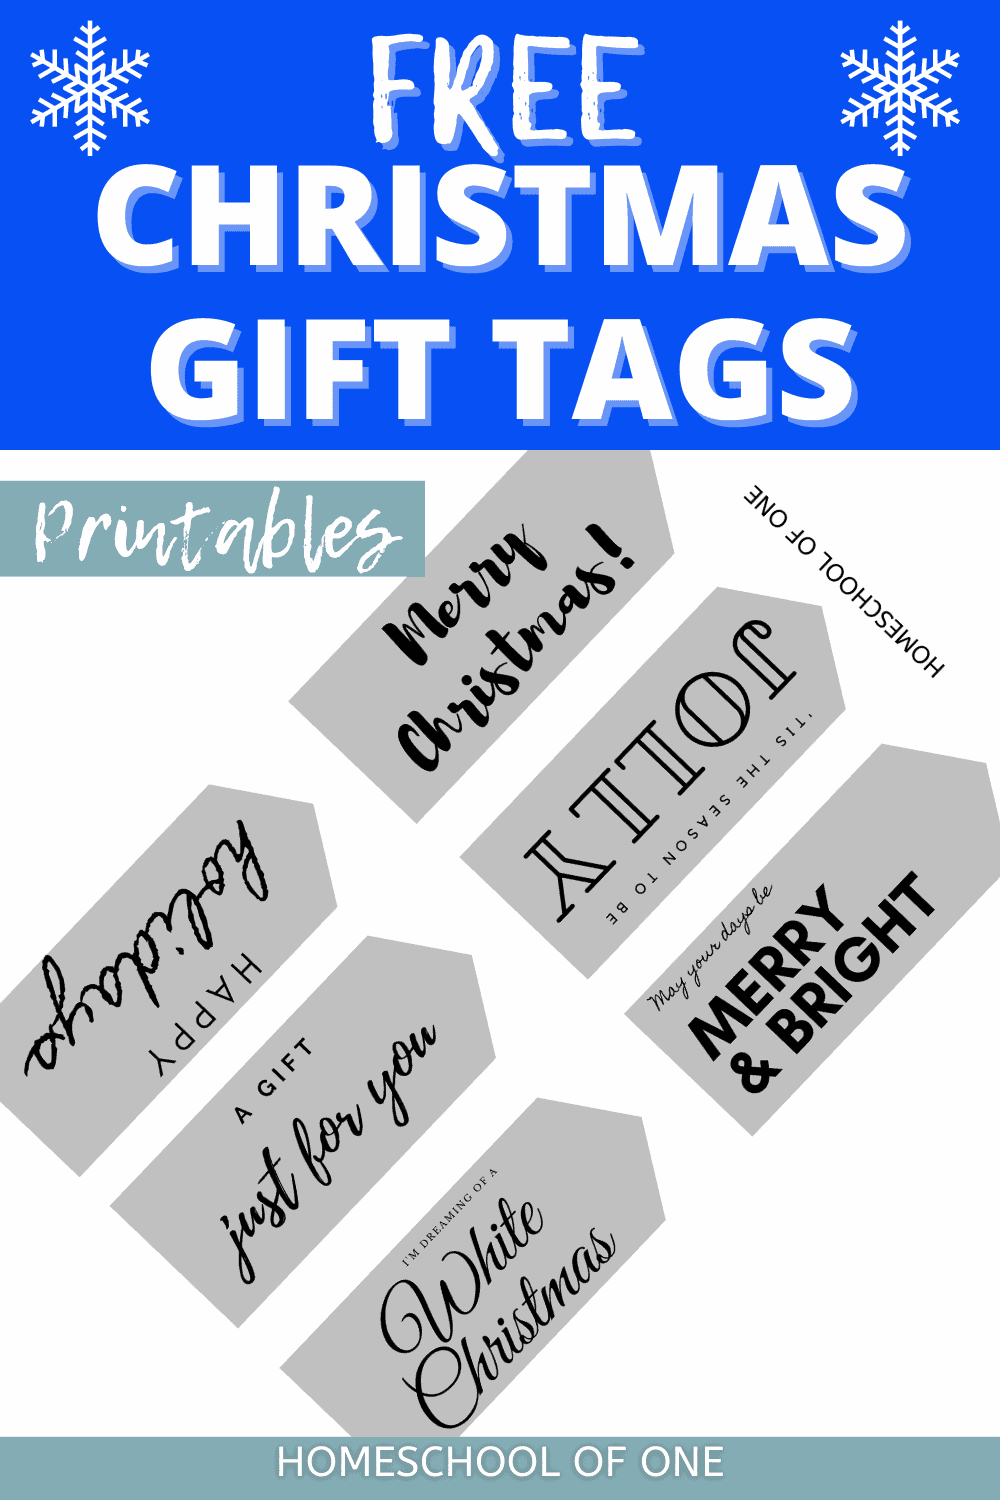 Over 40 Free Christmas Printable Tags perfect for gifts for all of the family